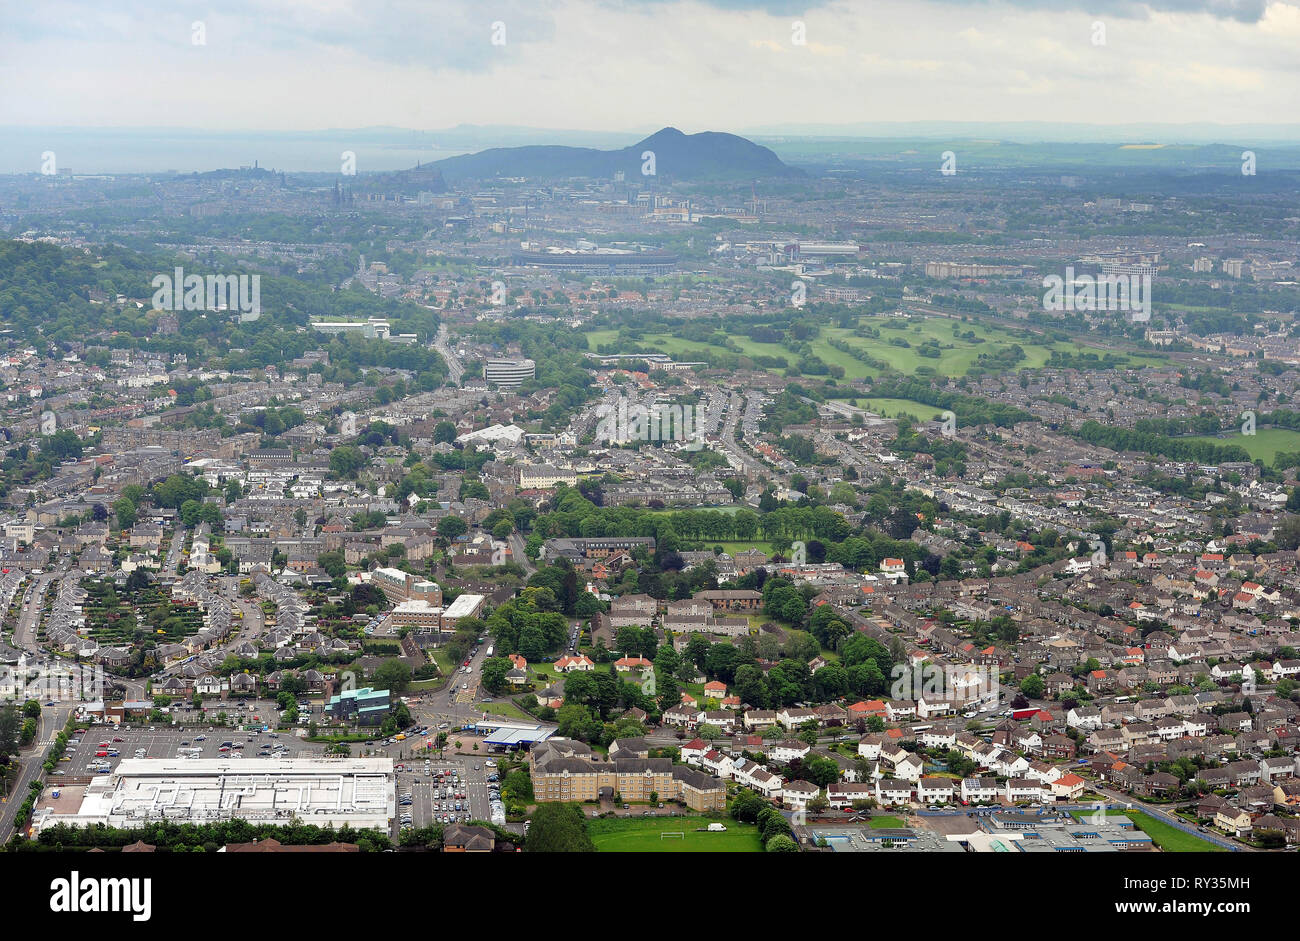 Aerial view of the Corstorphine area and west of Edinburgh. - Stock Image